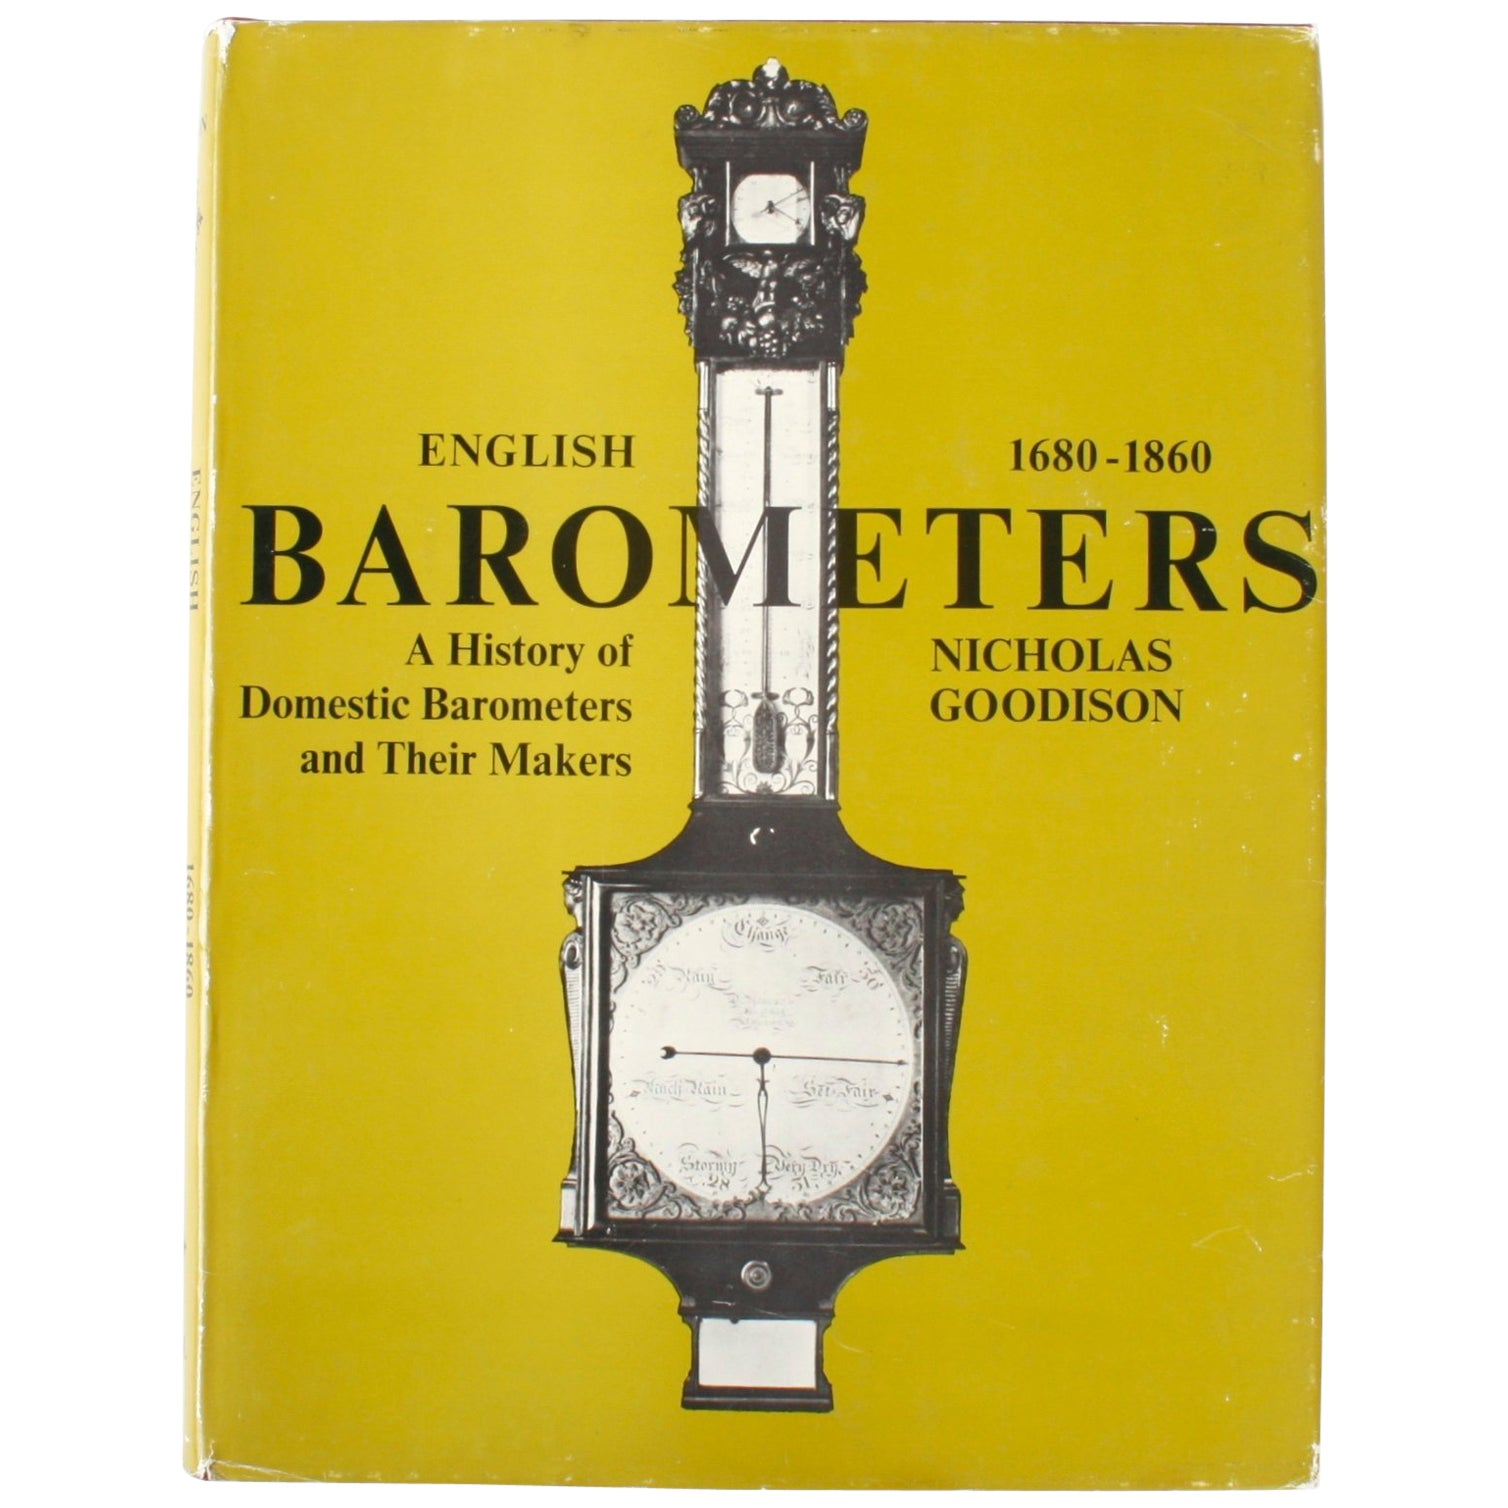 English Barometers, 1680-1860 by Nicholas Goodison, First Edition Book